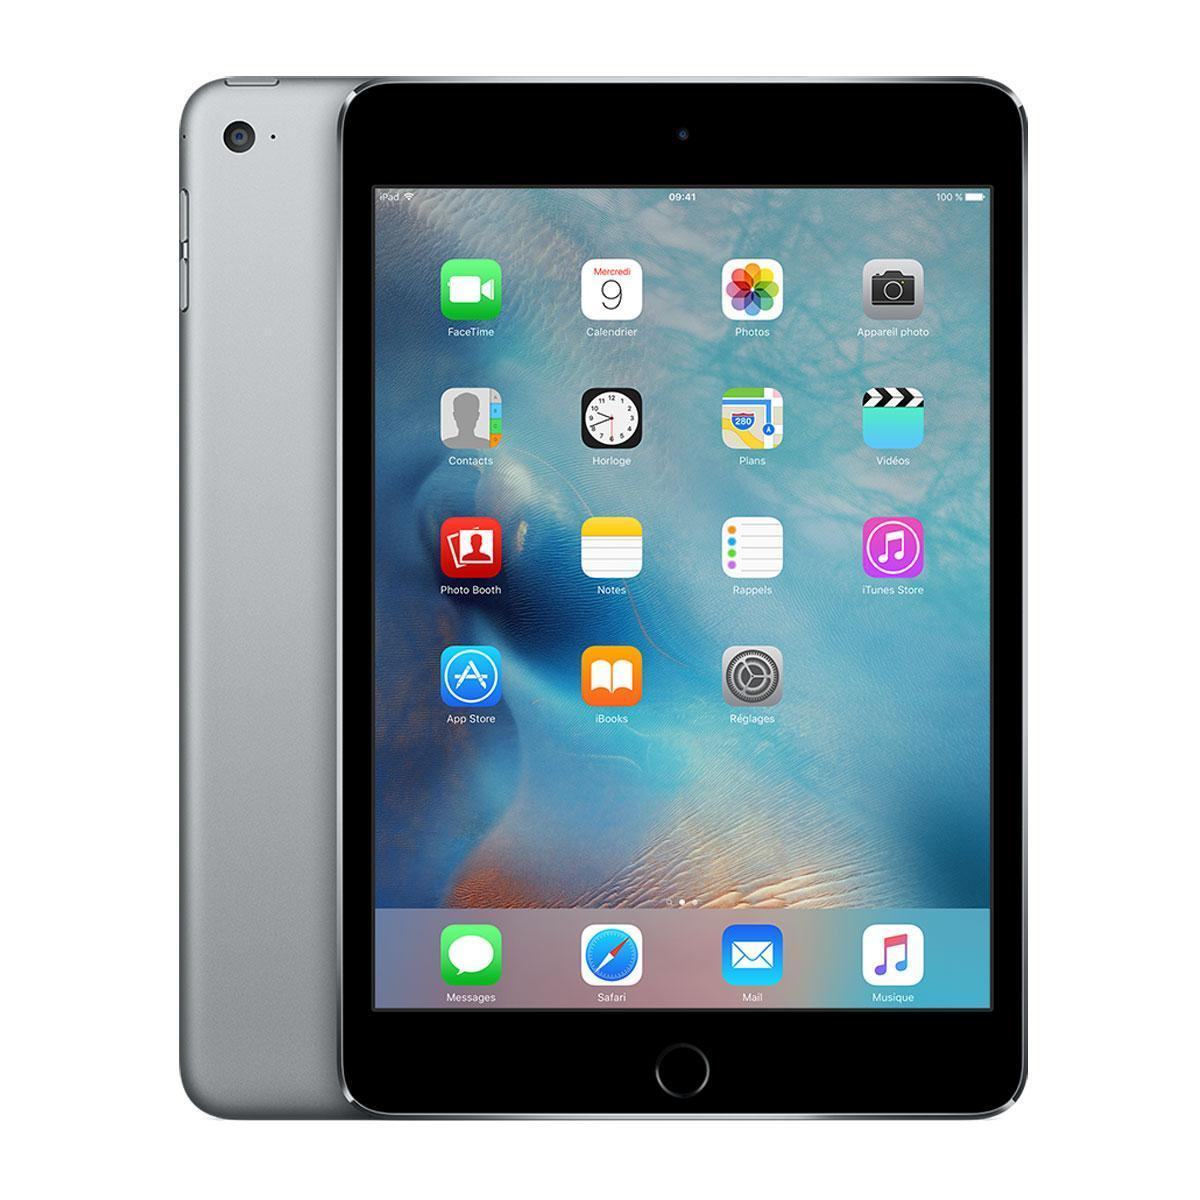 iPad mini 4 128 GB - Wifi + 4G - Gris espacial - Libre